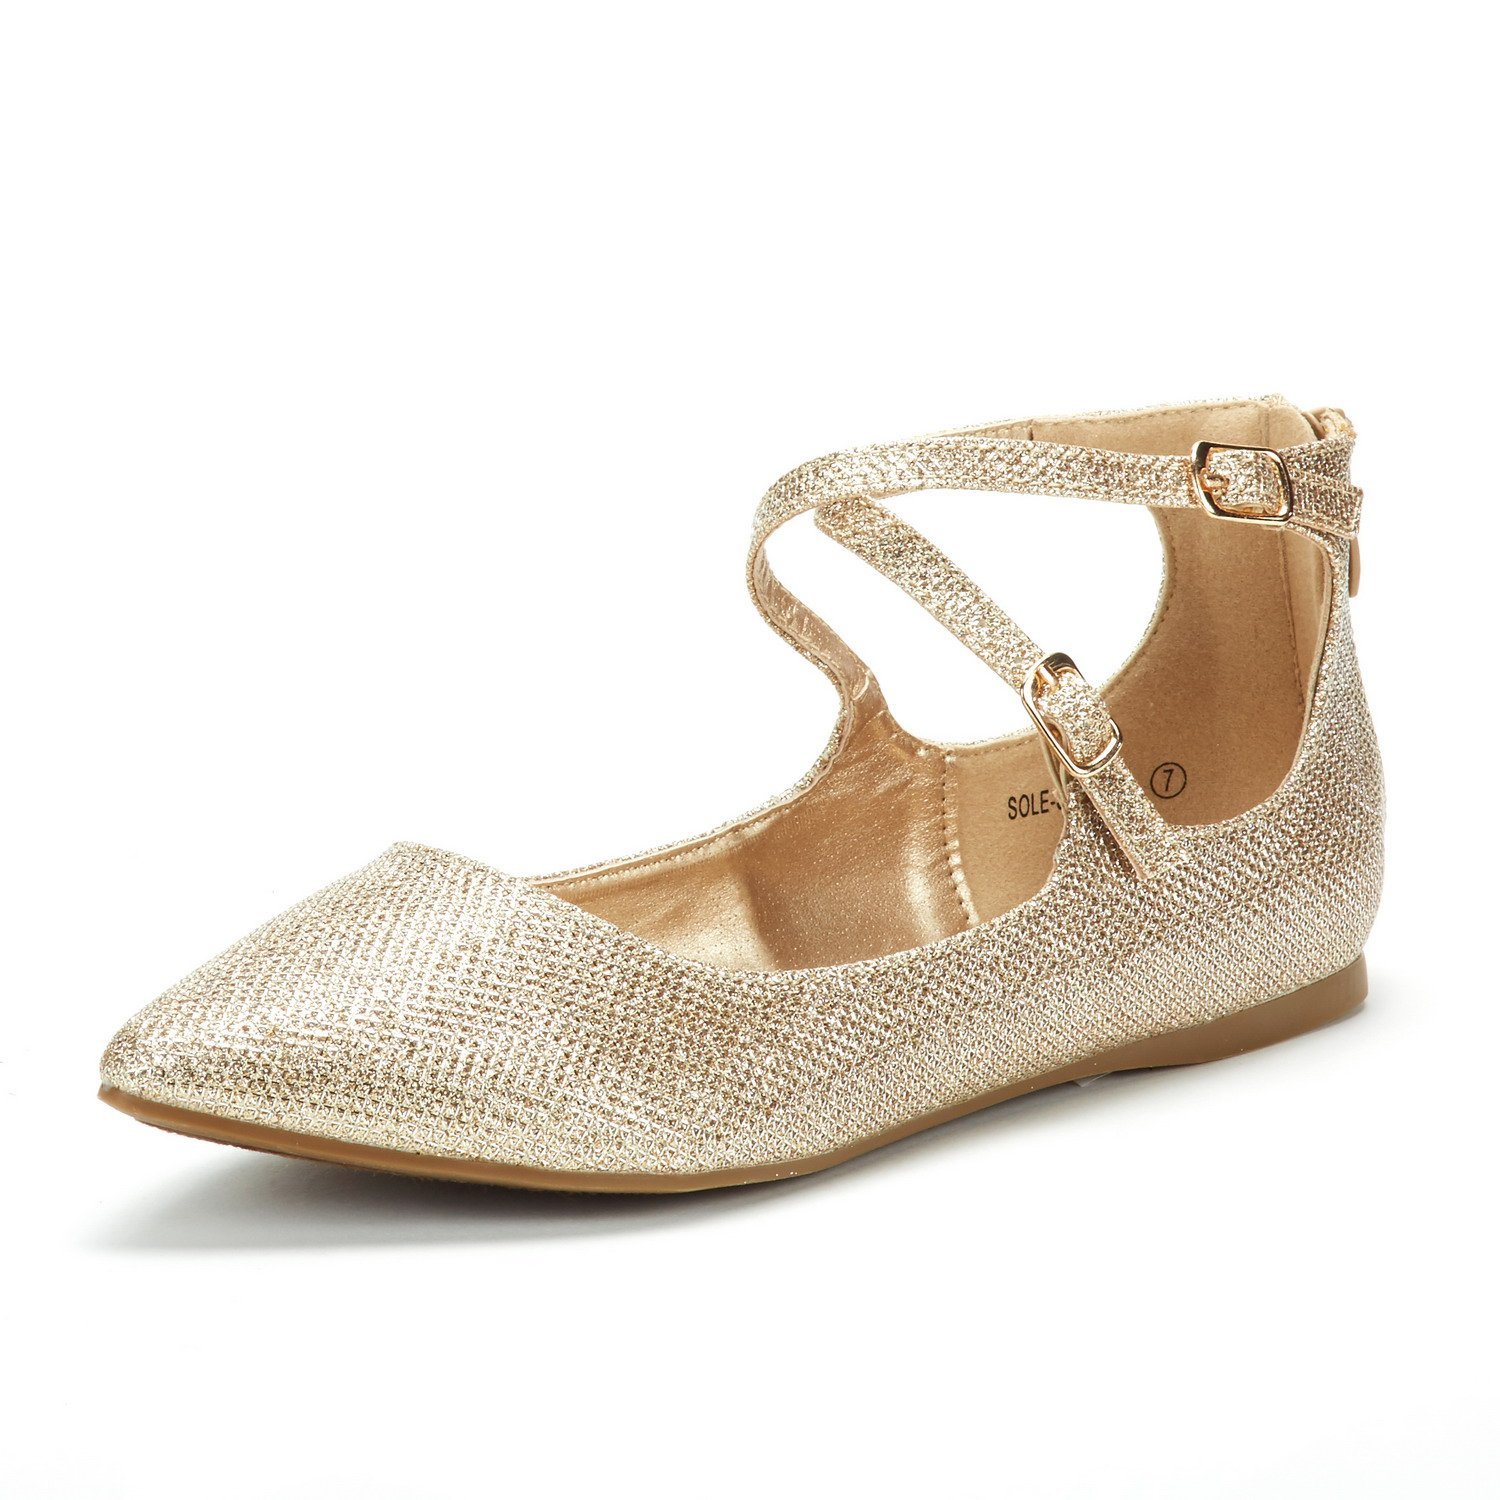 DREAM PAIRS Women's Sole-Strappy Gold Glitter Ankle Straps Flats Shoes - 5 M US